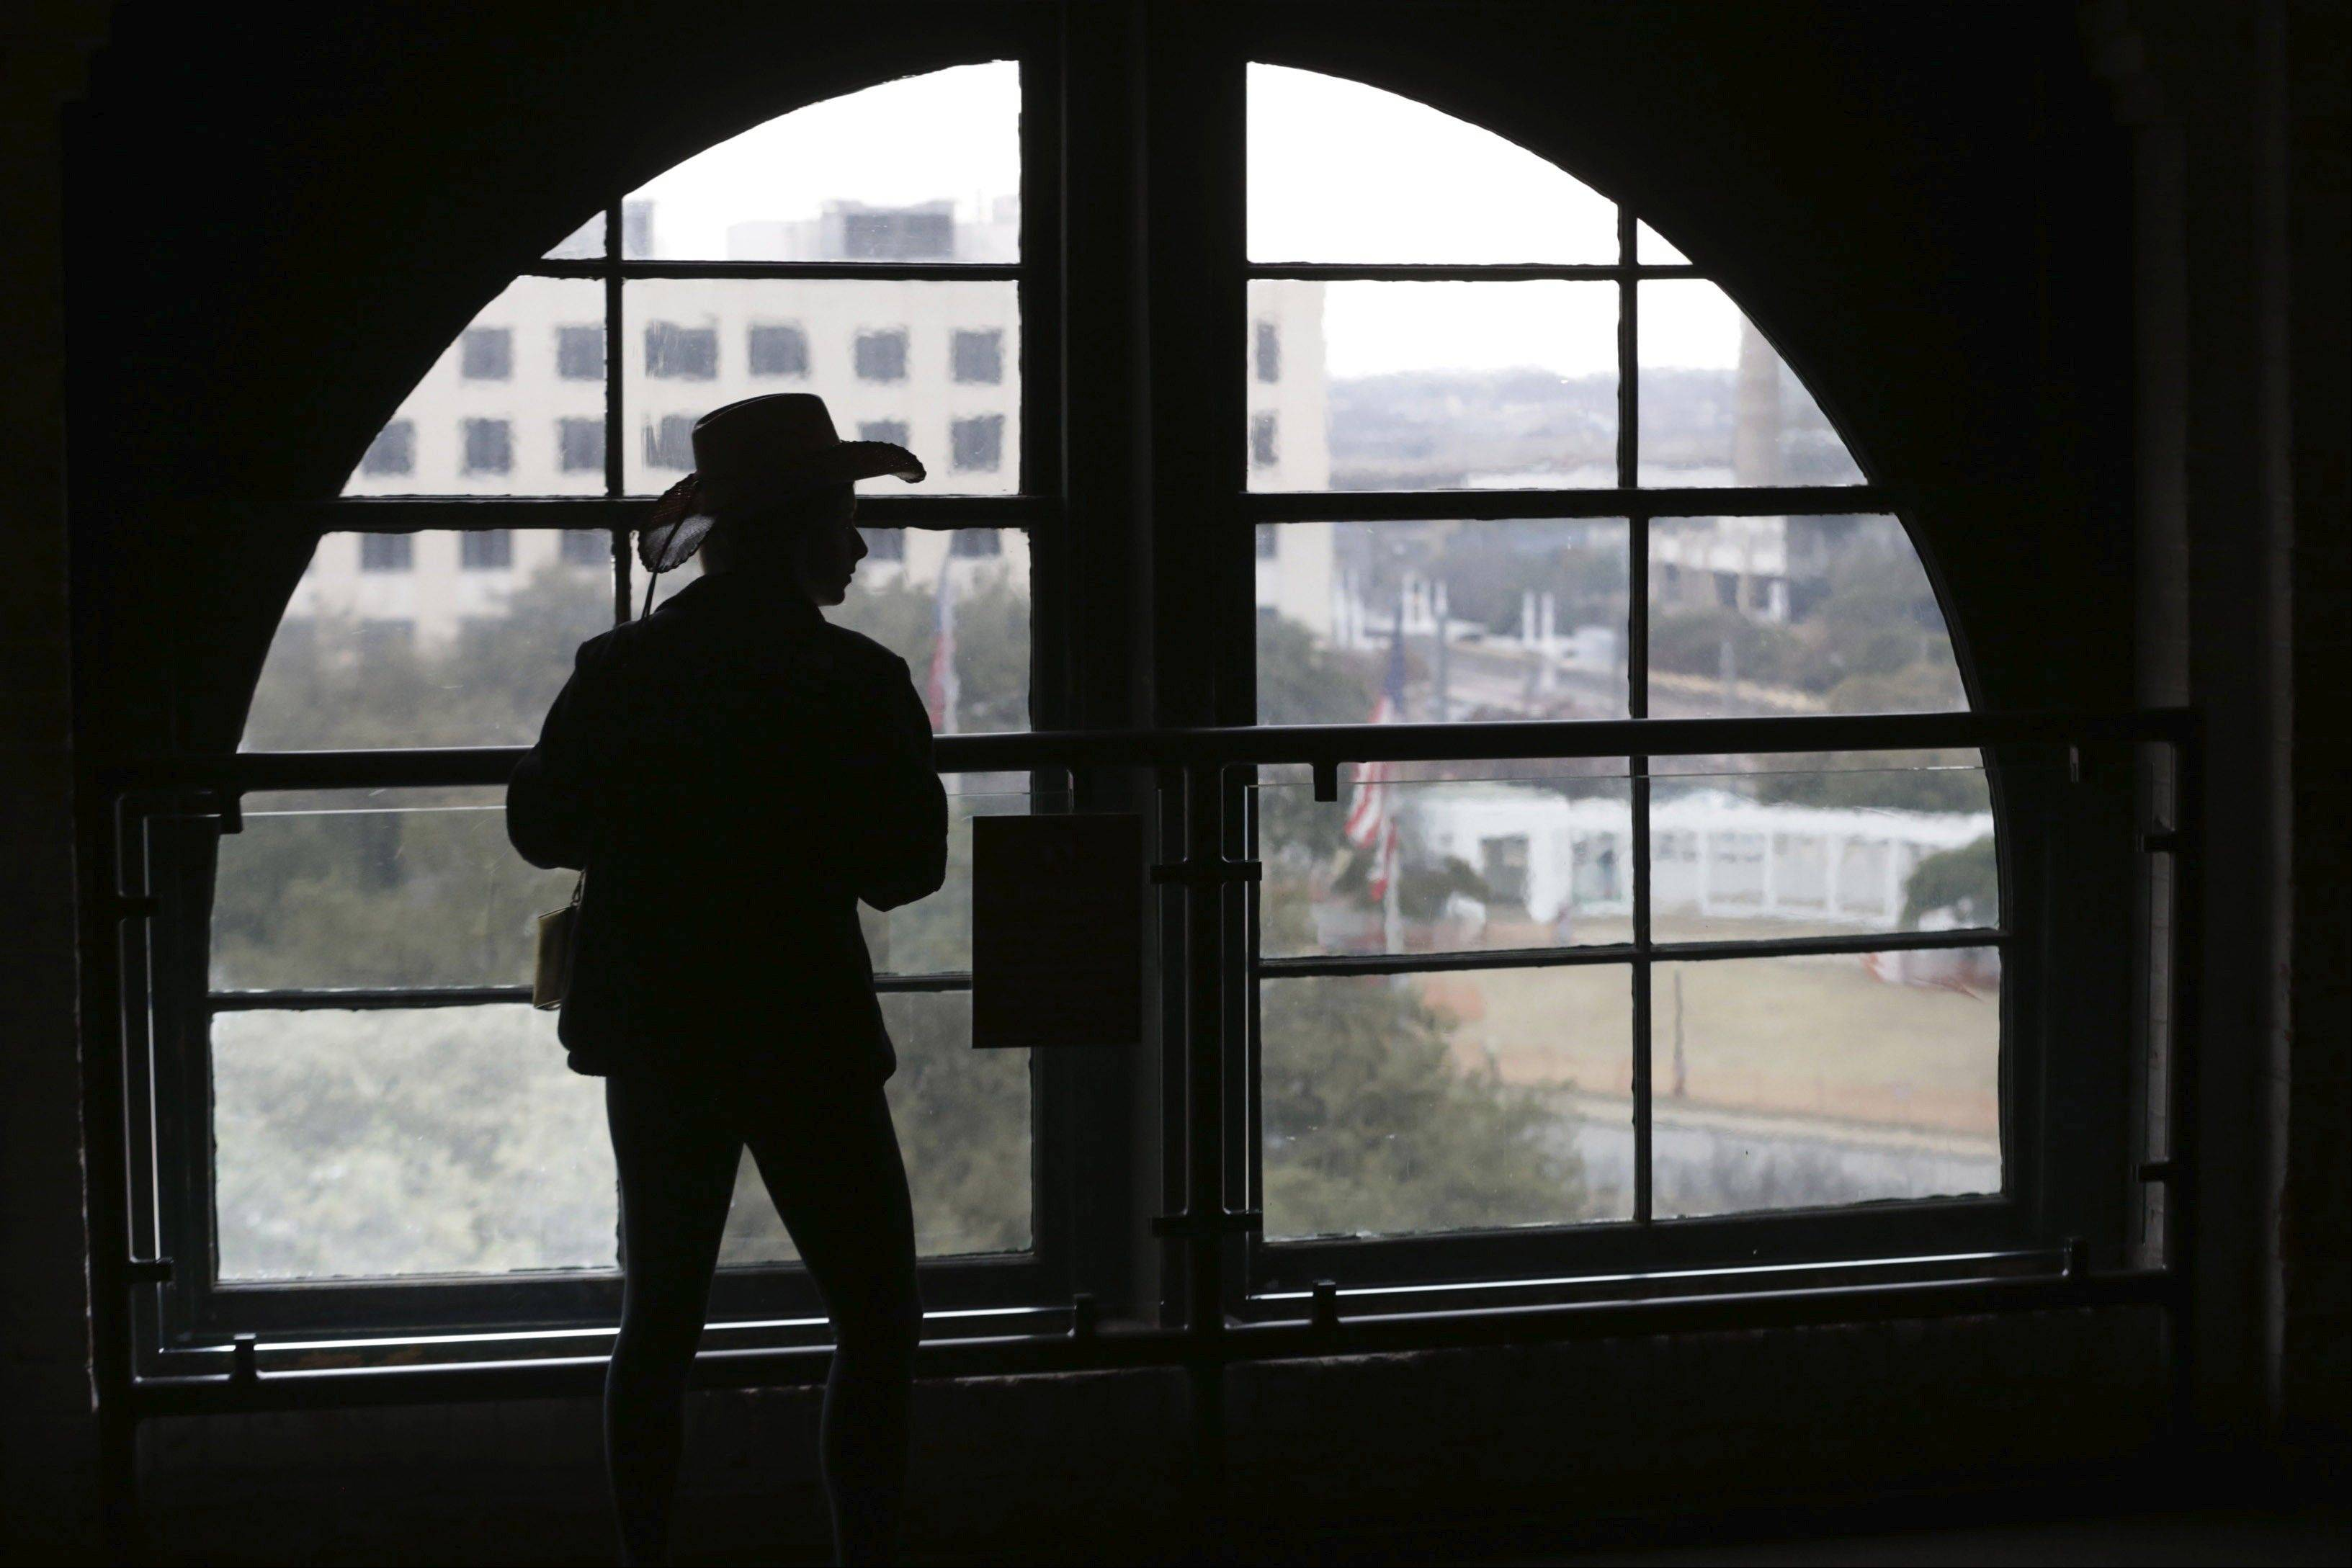 A visitor looks out onto Dealey Plaza from the Sixth Floor Museum located in the former Texas School Book Depository building in Dallas. President John F. Kennedy's assassin Lee Harvey Oswald fired at the president's motorcade from a window on the sixth floor of the Texas School Book Depository on Nov. 22, 1963.